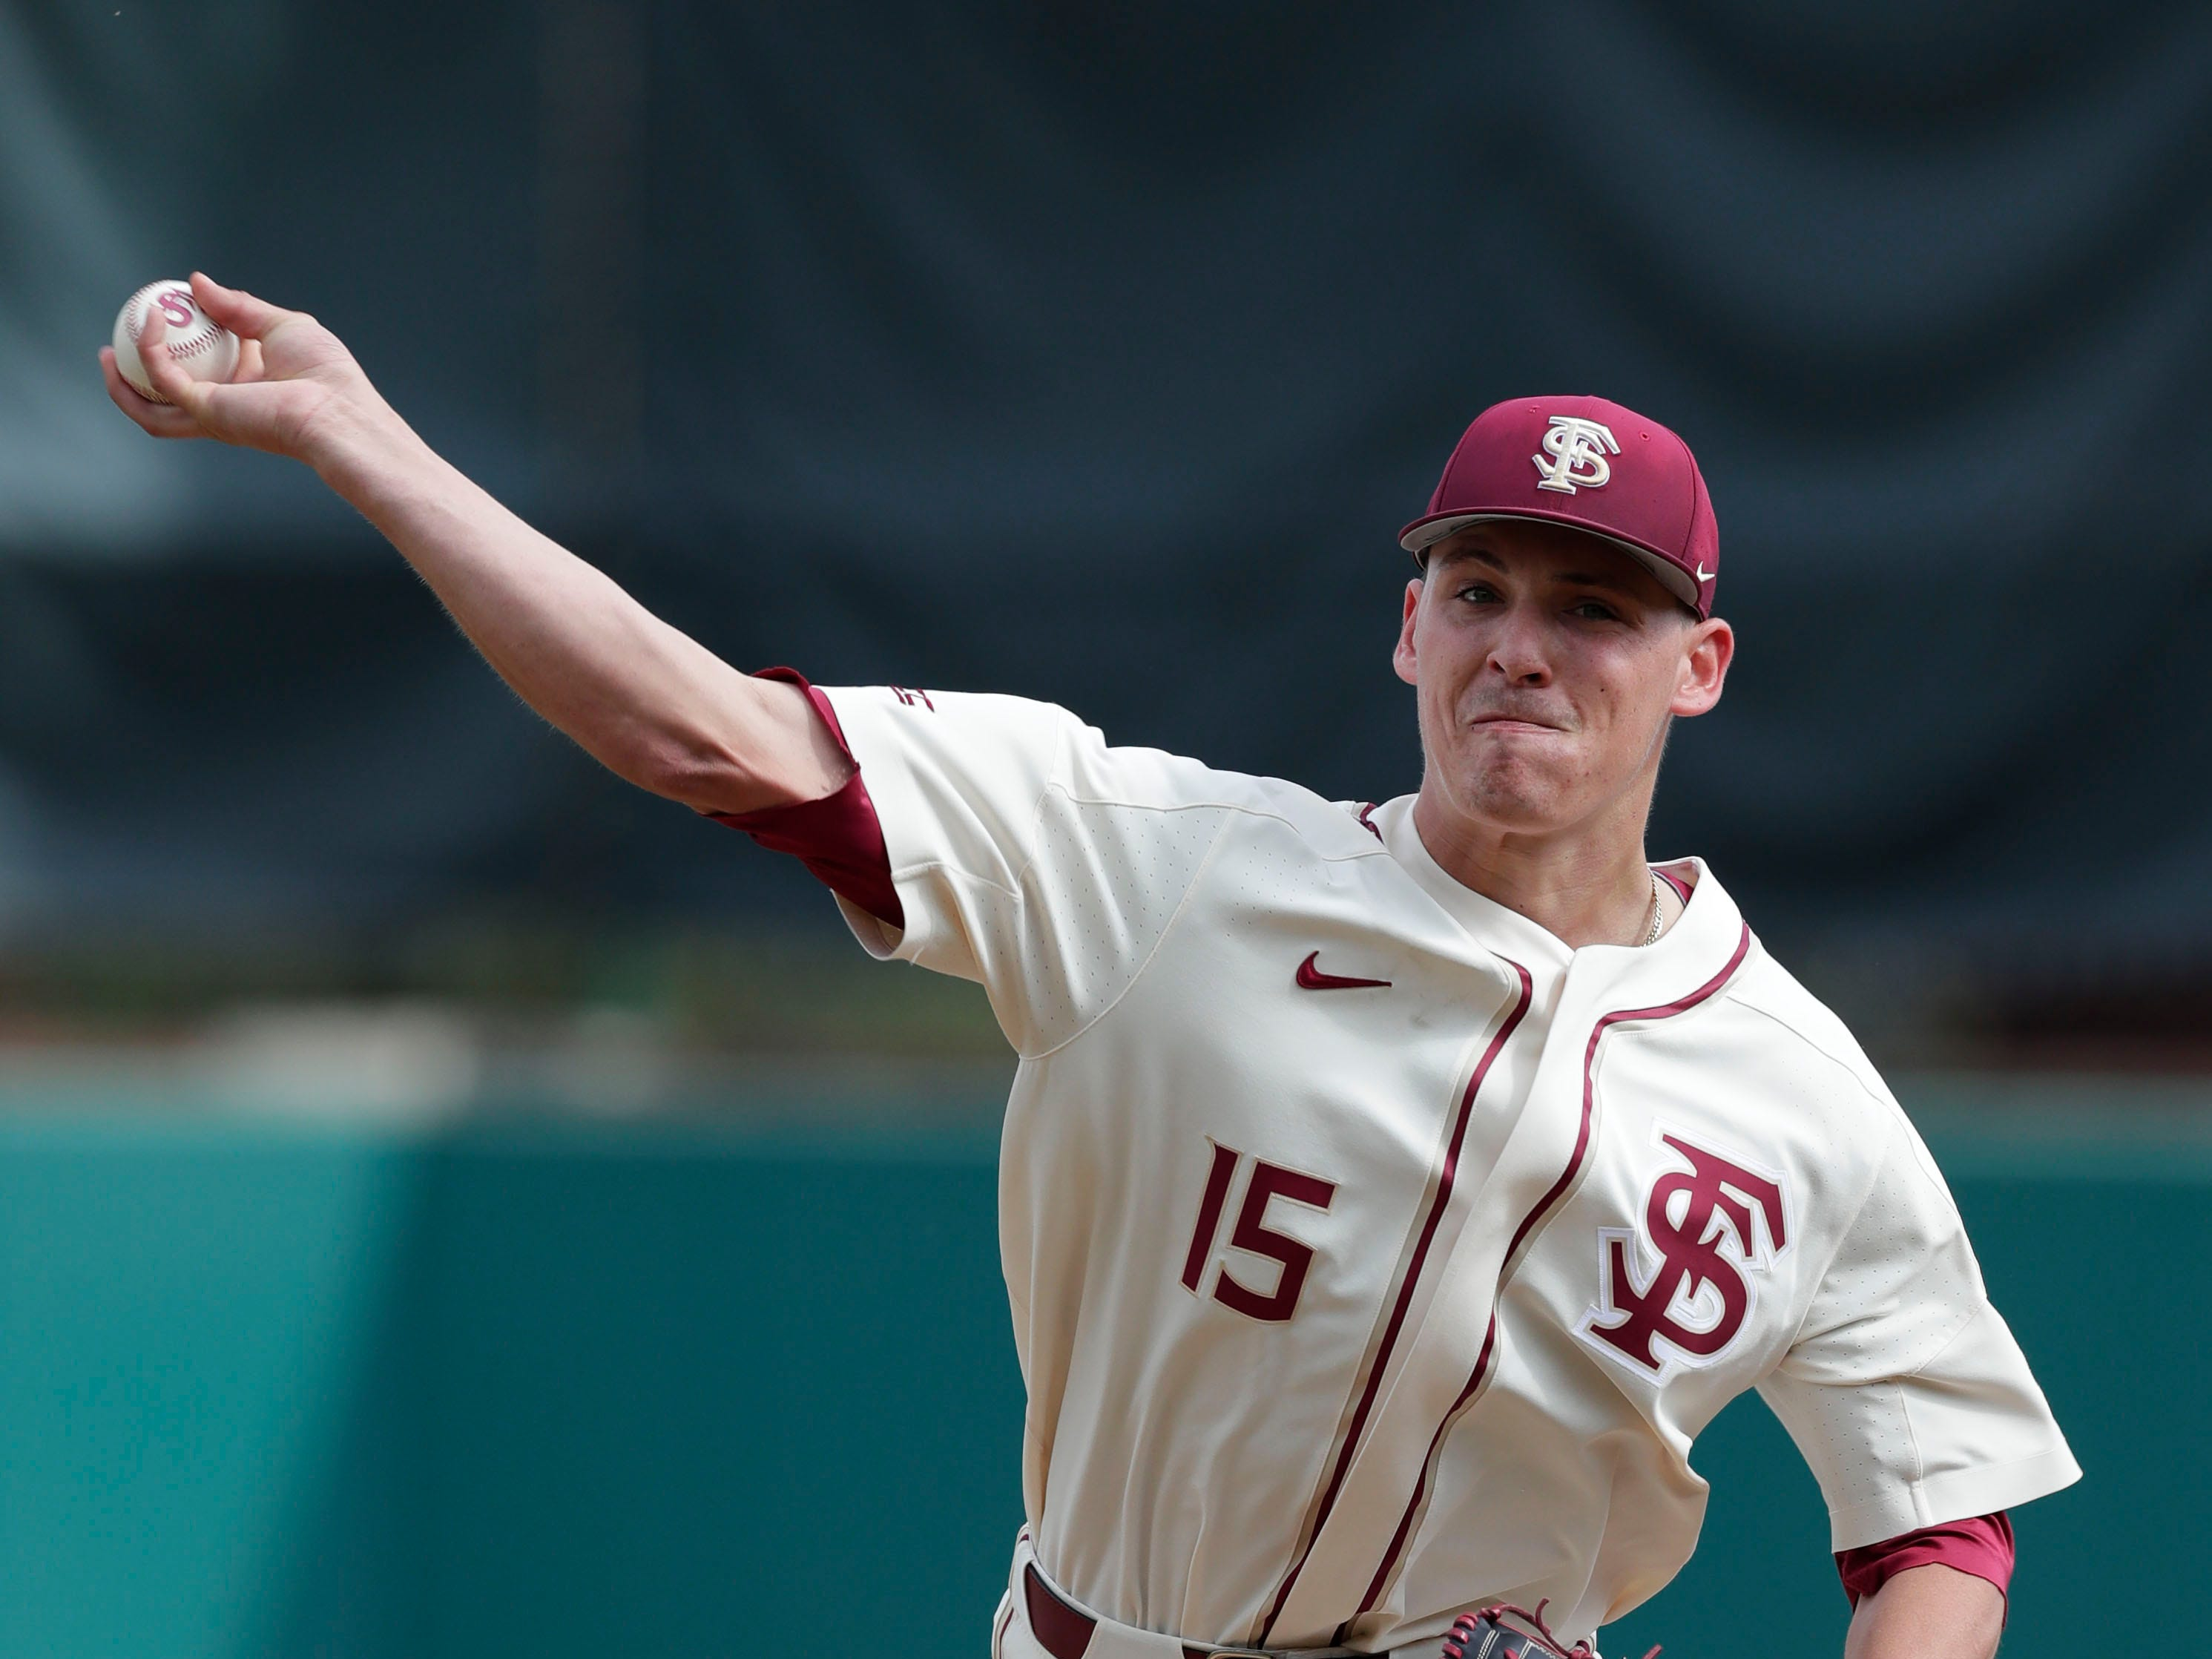 Florida State Seminoles right handed pitcher CJ Van Eyk (15) warms up his pitching as the Florida State Seminoles host the Maine Black Bears for the second game of the series, Saturday Feb. 16, 2019.